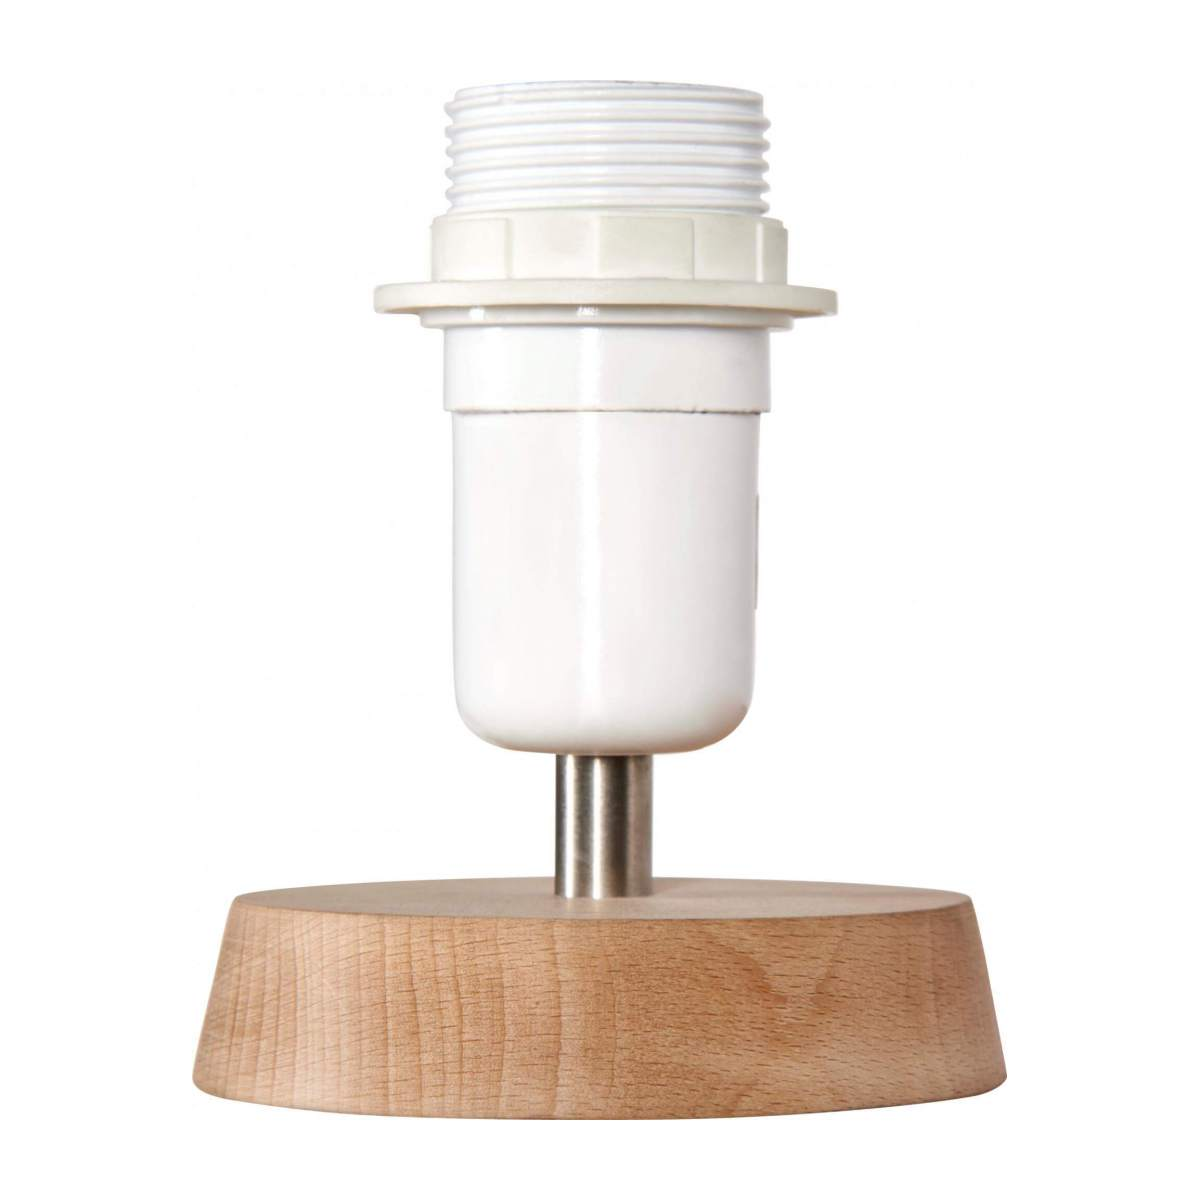 Wooden lamp stand n°3